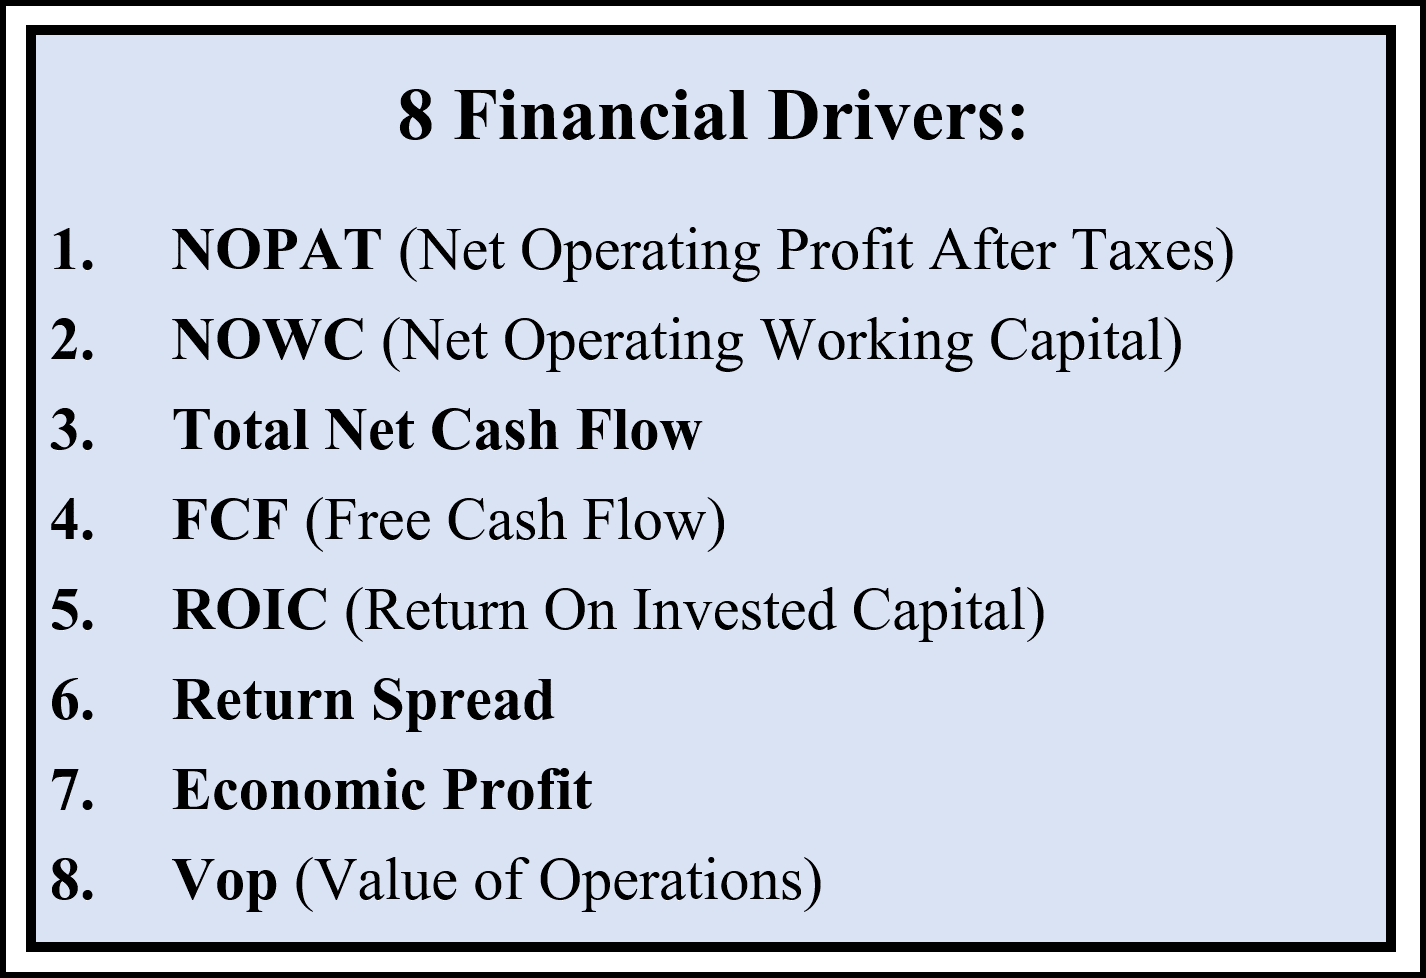 8 financial drivers 7.png